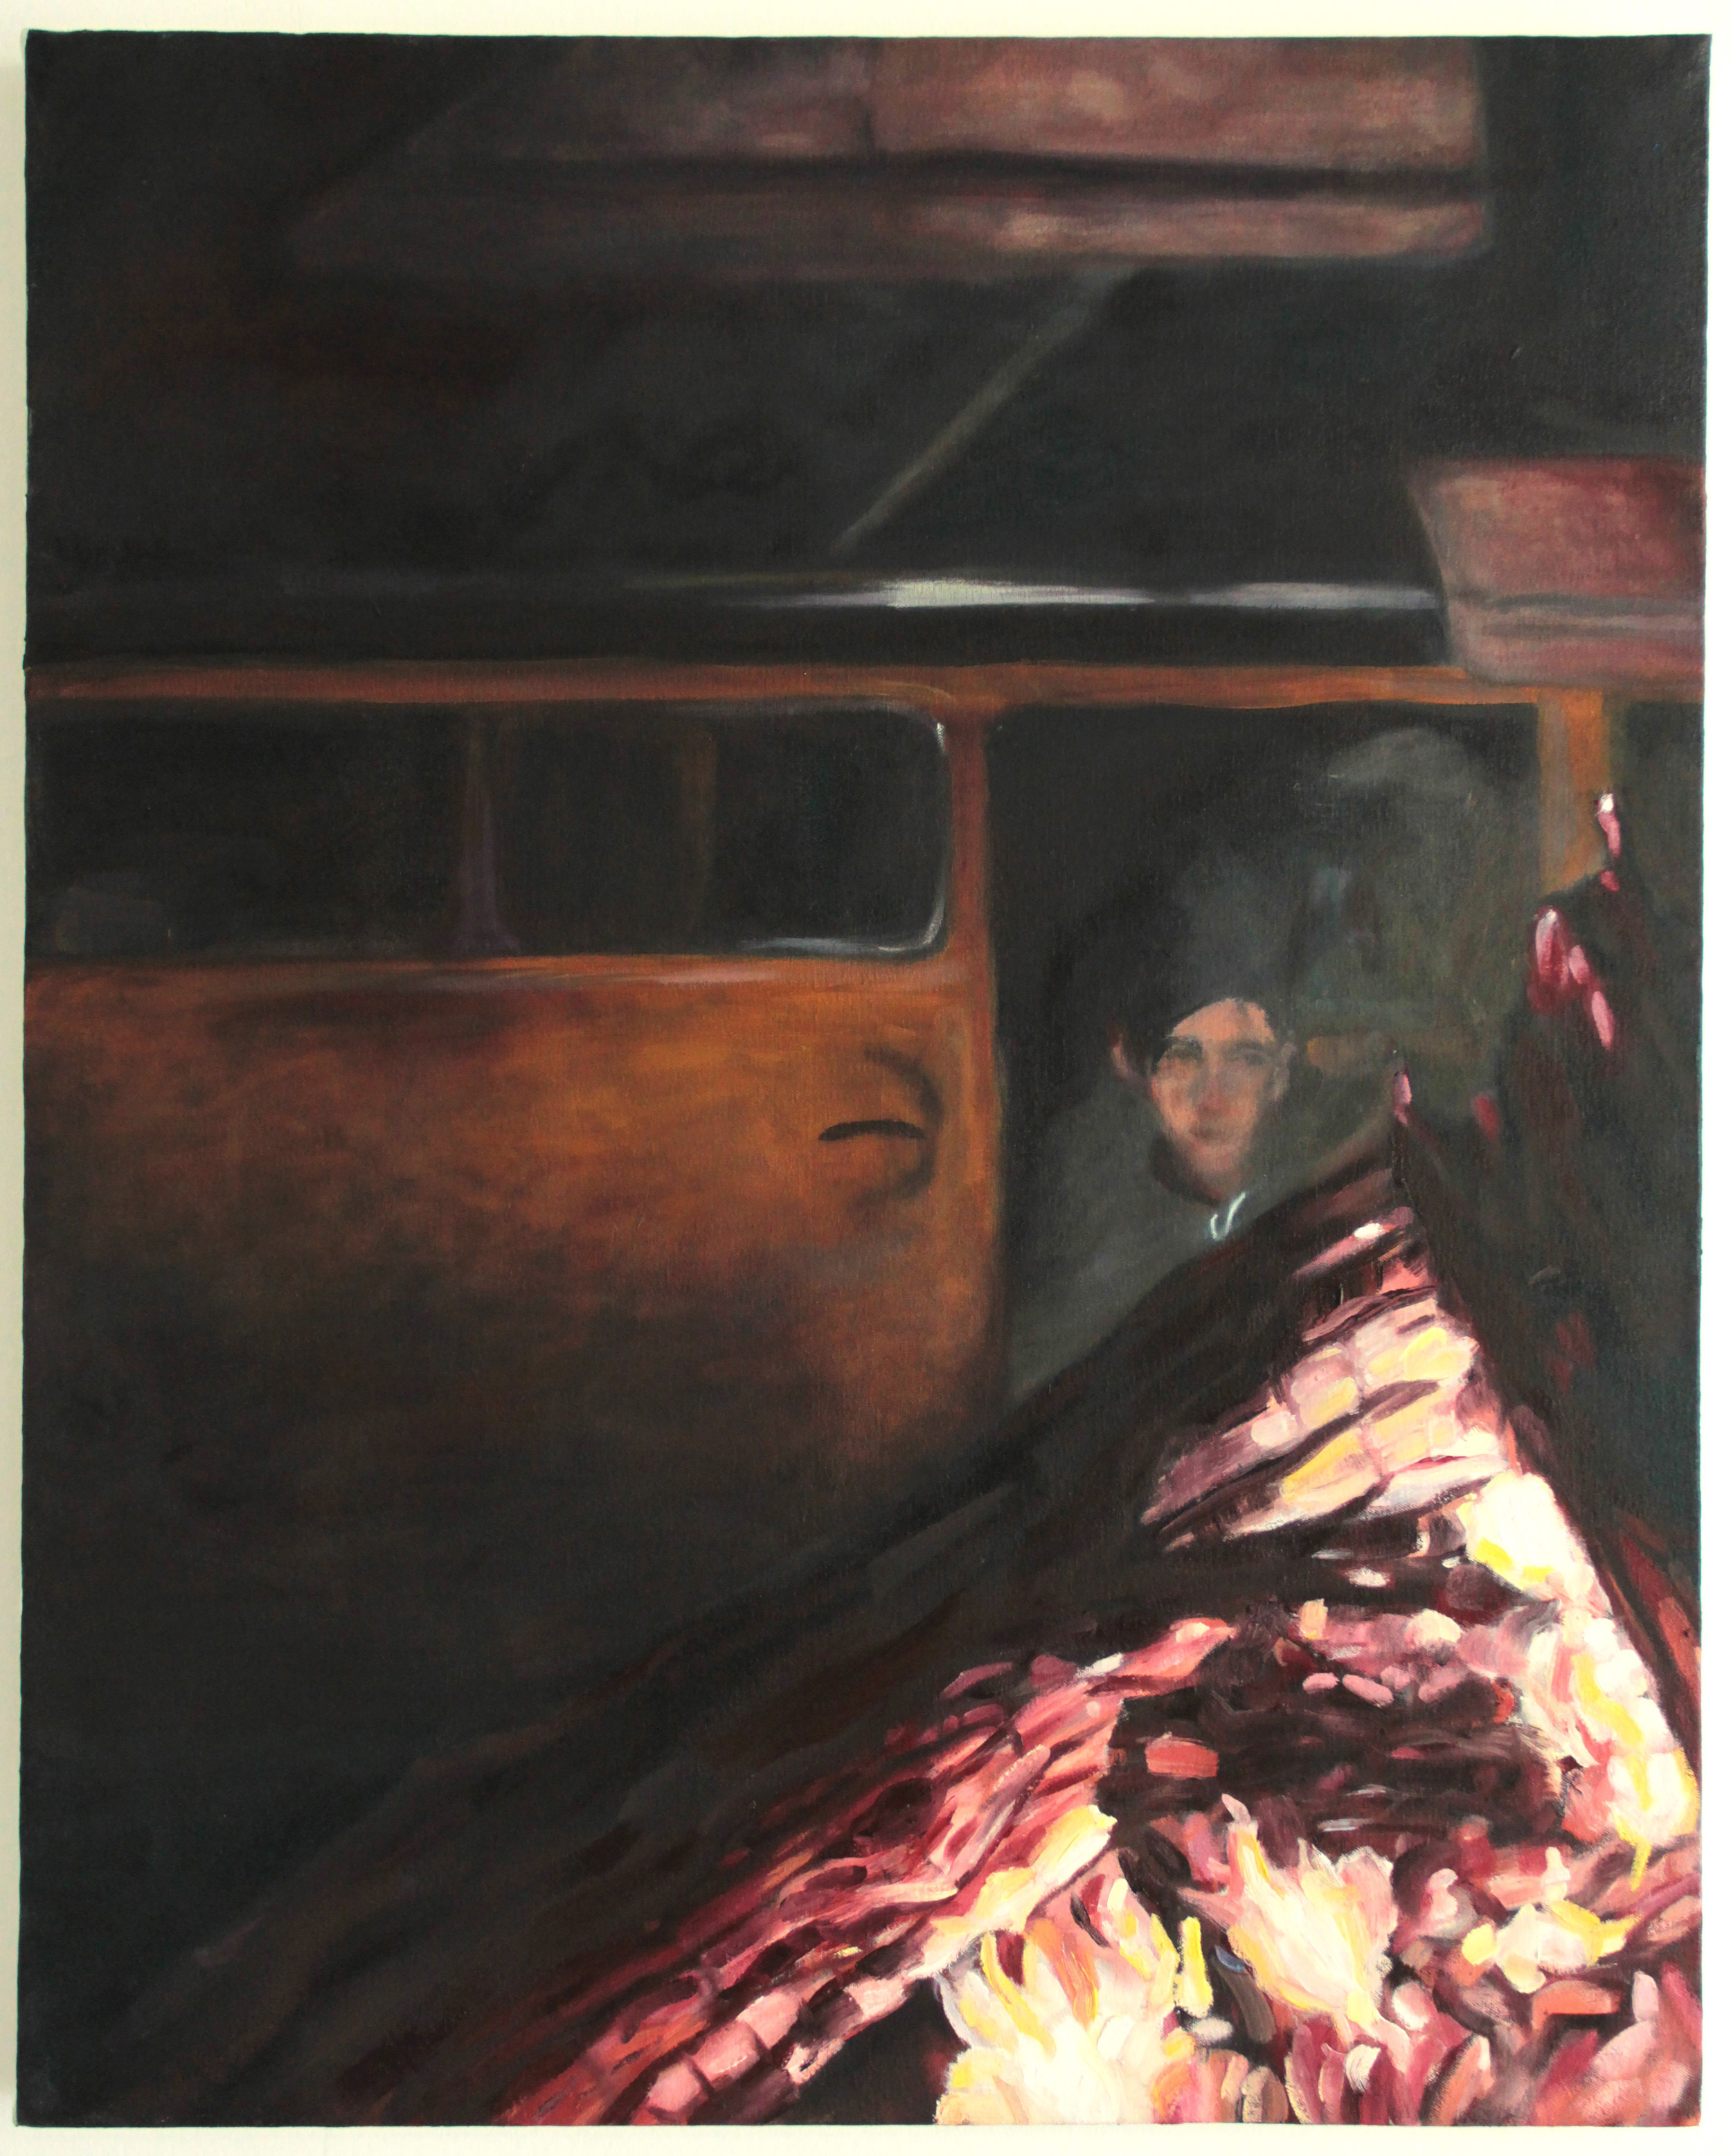 Between These Heart Strings Lived Saul Bellow , 2011, Oil on Canvas, 40 inches (101.6cm) x 30 inches (76.2cm)